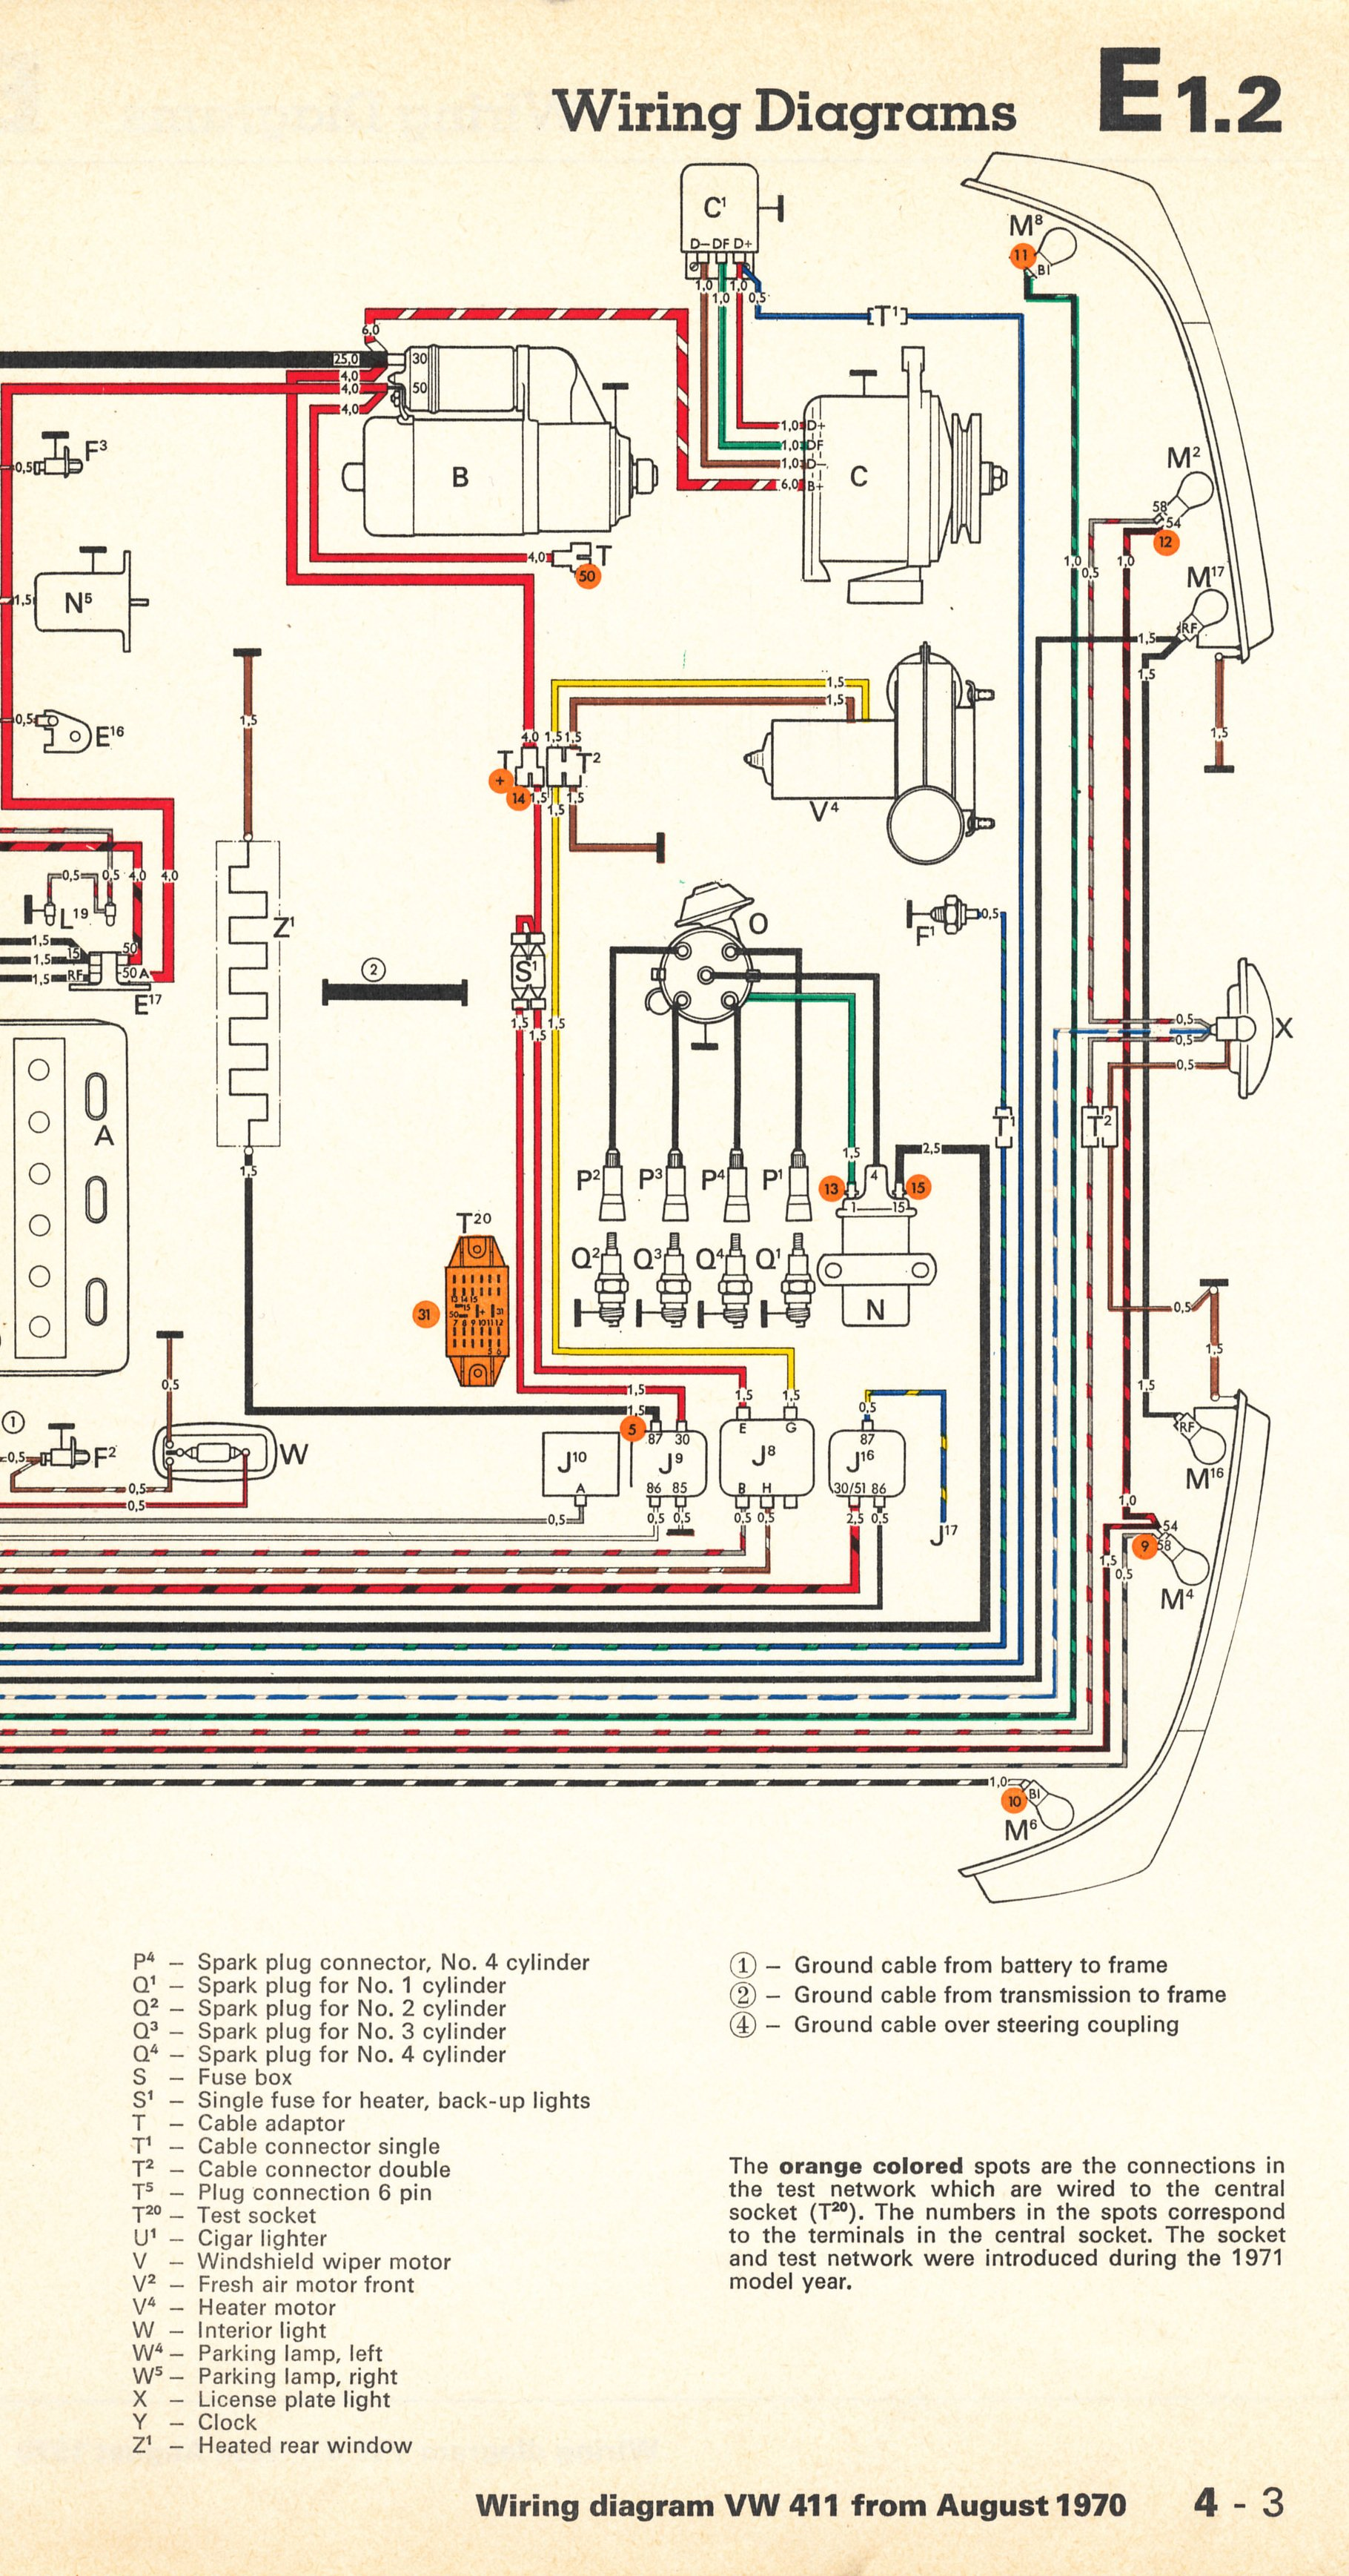 hight resolution of ti jaguar frc wiring diagram frc pneumatics diagram wiring frc robot wiring frc robotics